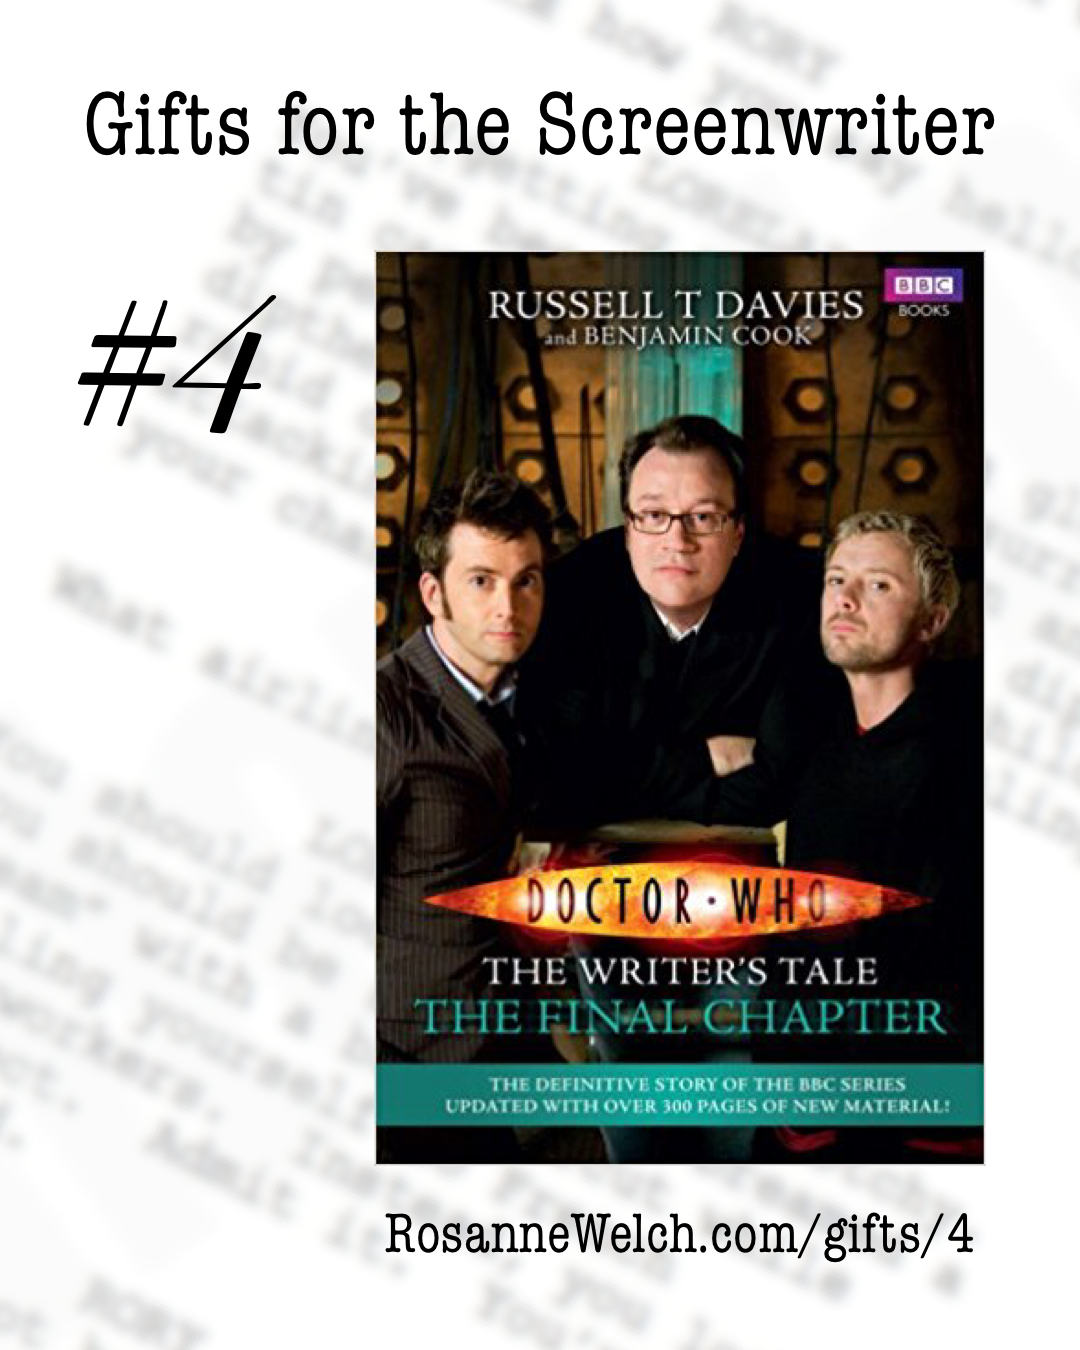 Doctor Who: The Writer's Tale by Russell T. Davies   Gifts for the Screenwriter #4